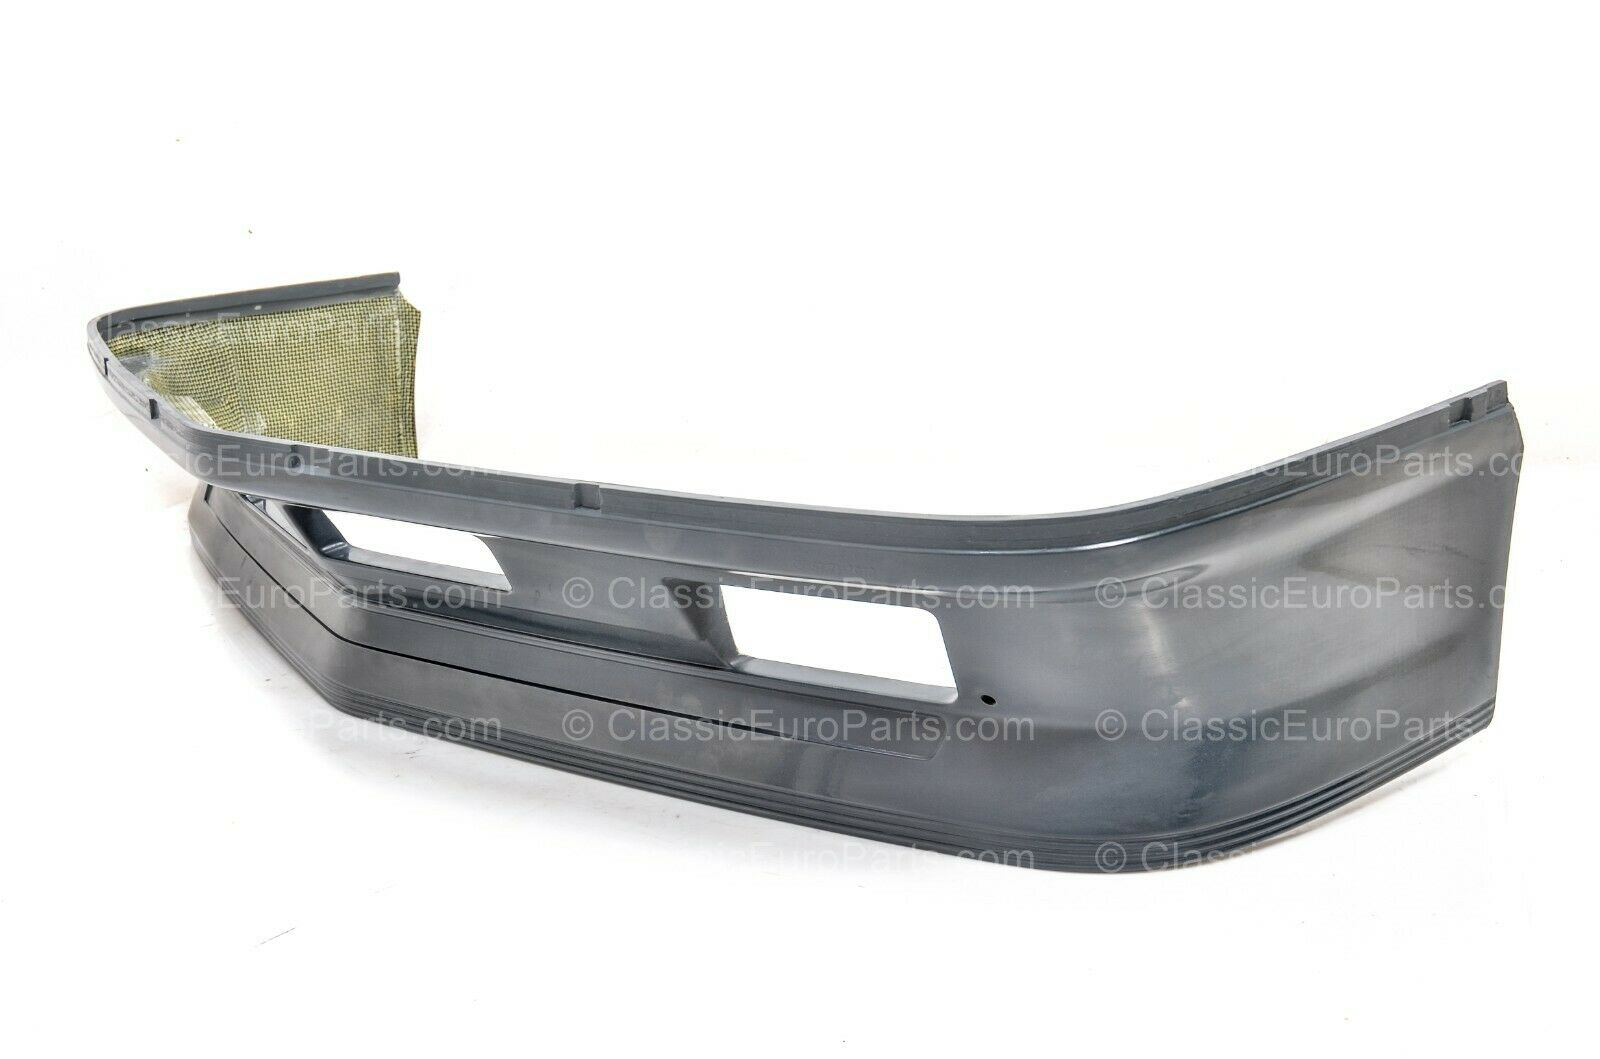 Euro Front Spoiler For E24 M635i Aftermarket Classiceuroparts